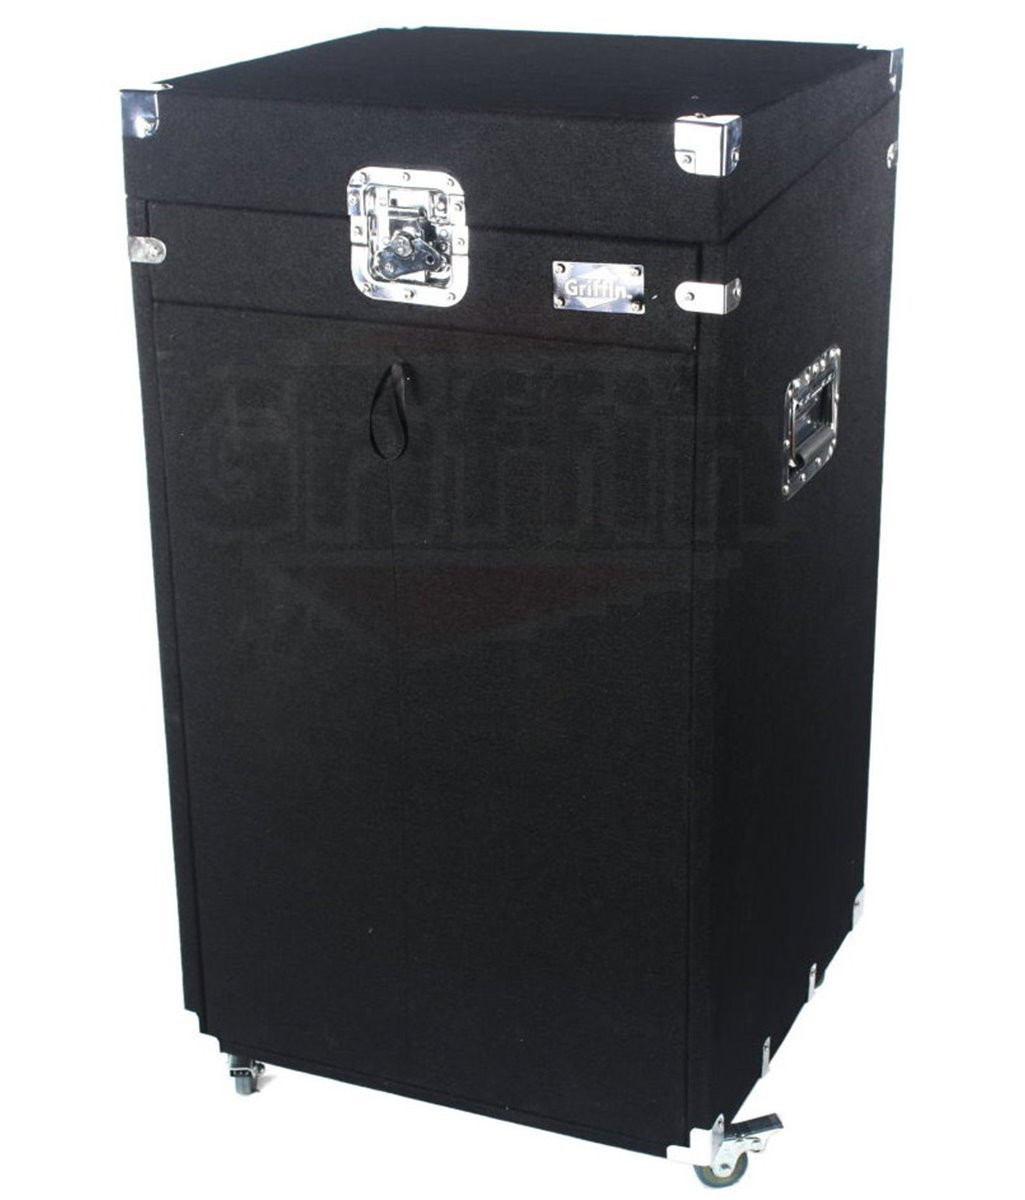 Audio Equipment Travel Cases